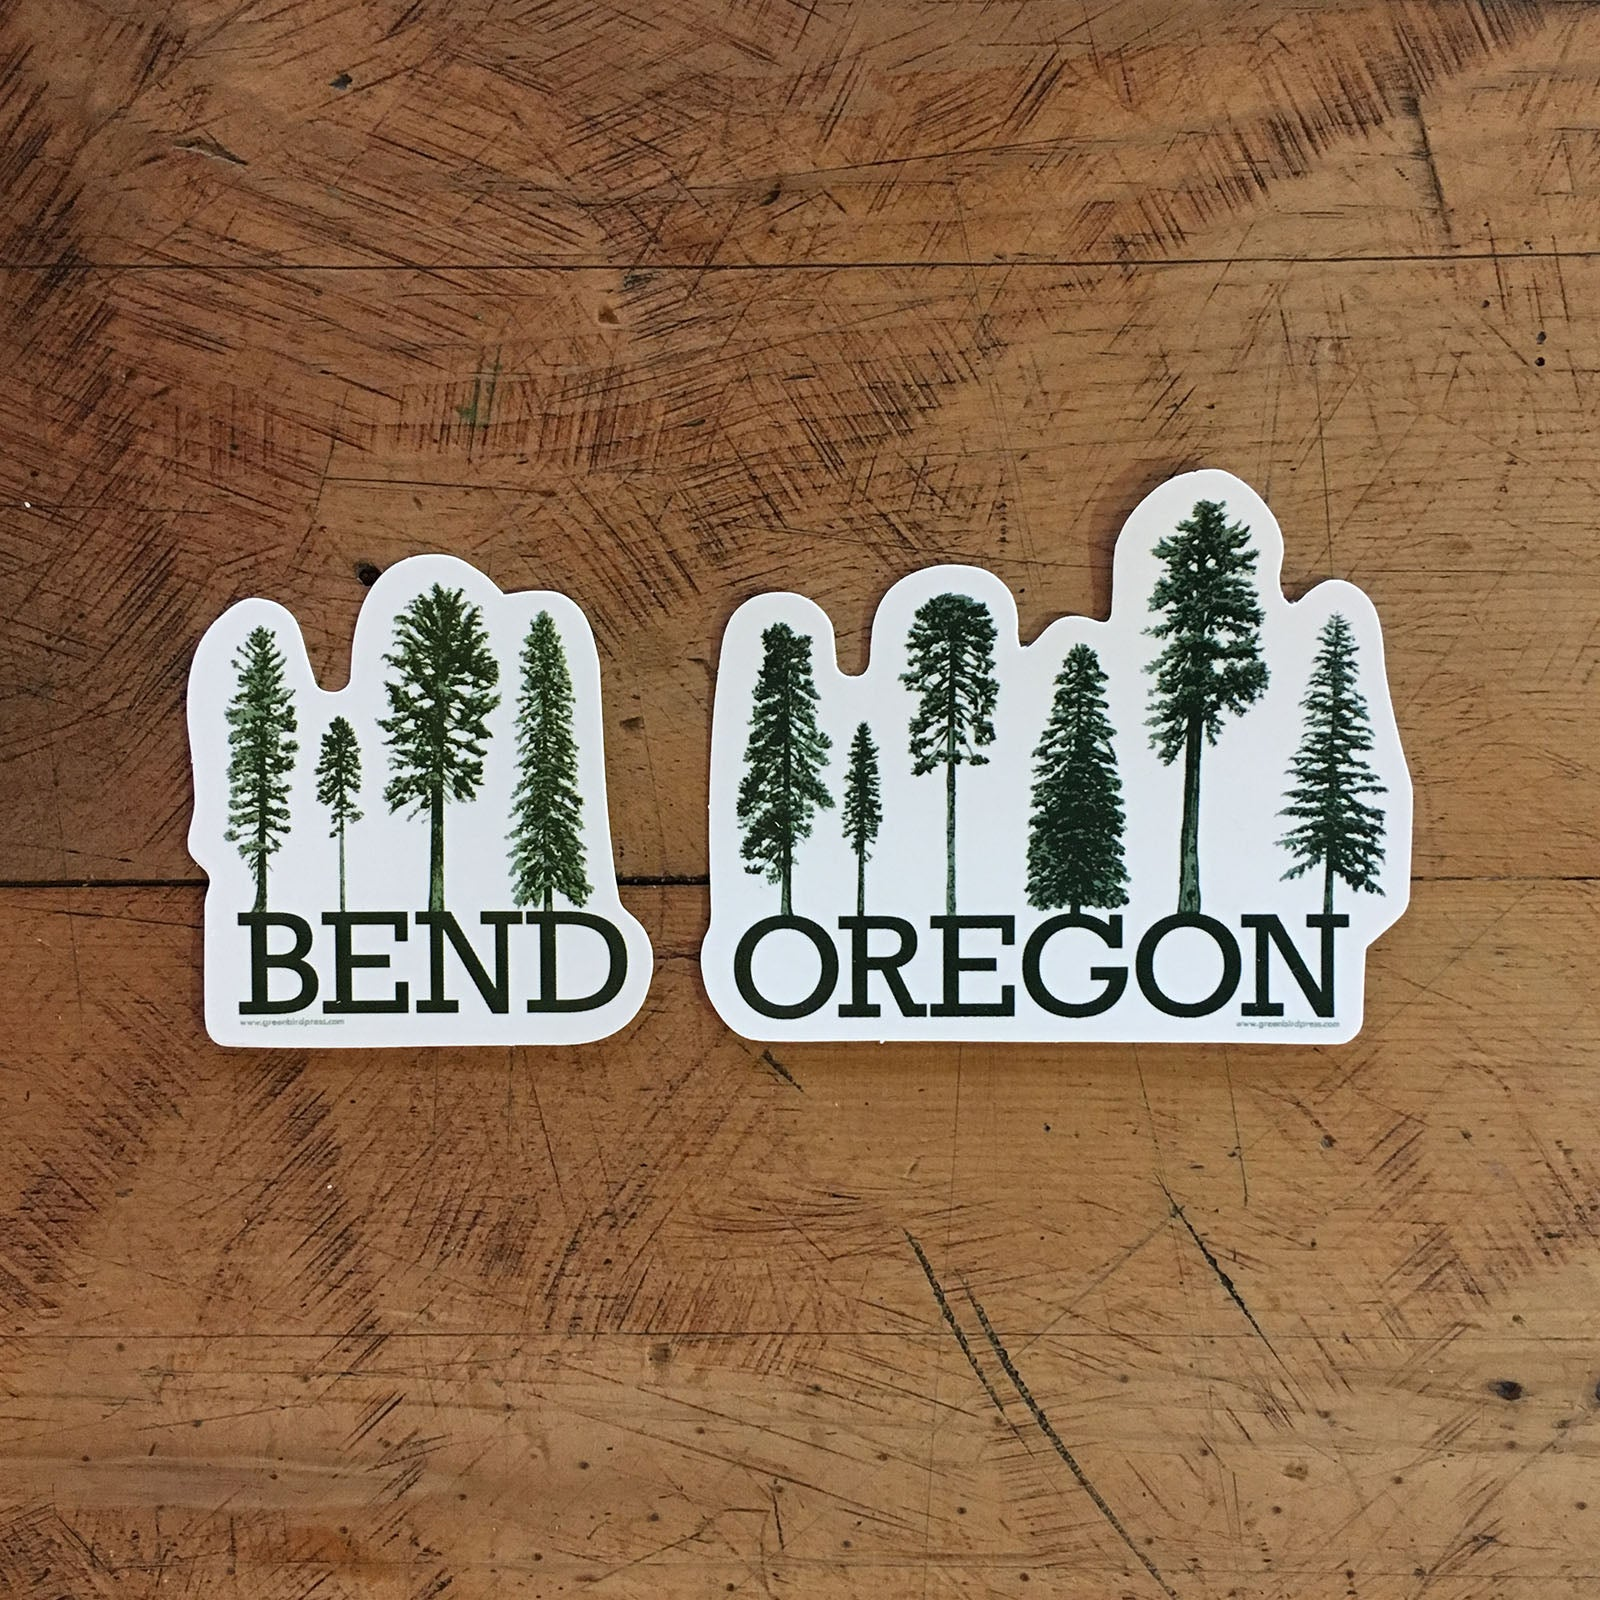 Bend oregon conifer tree stickers